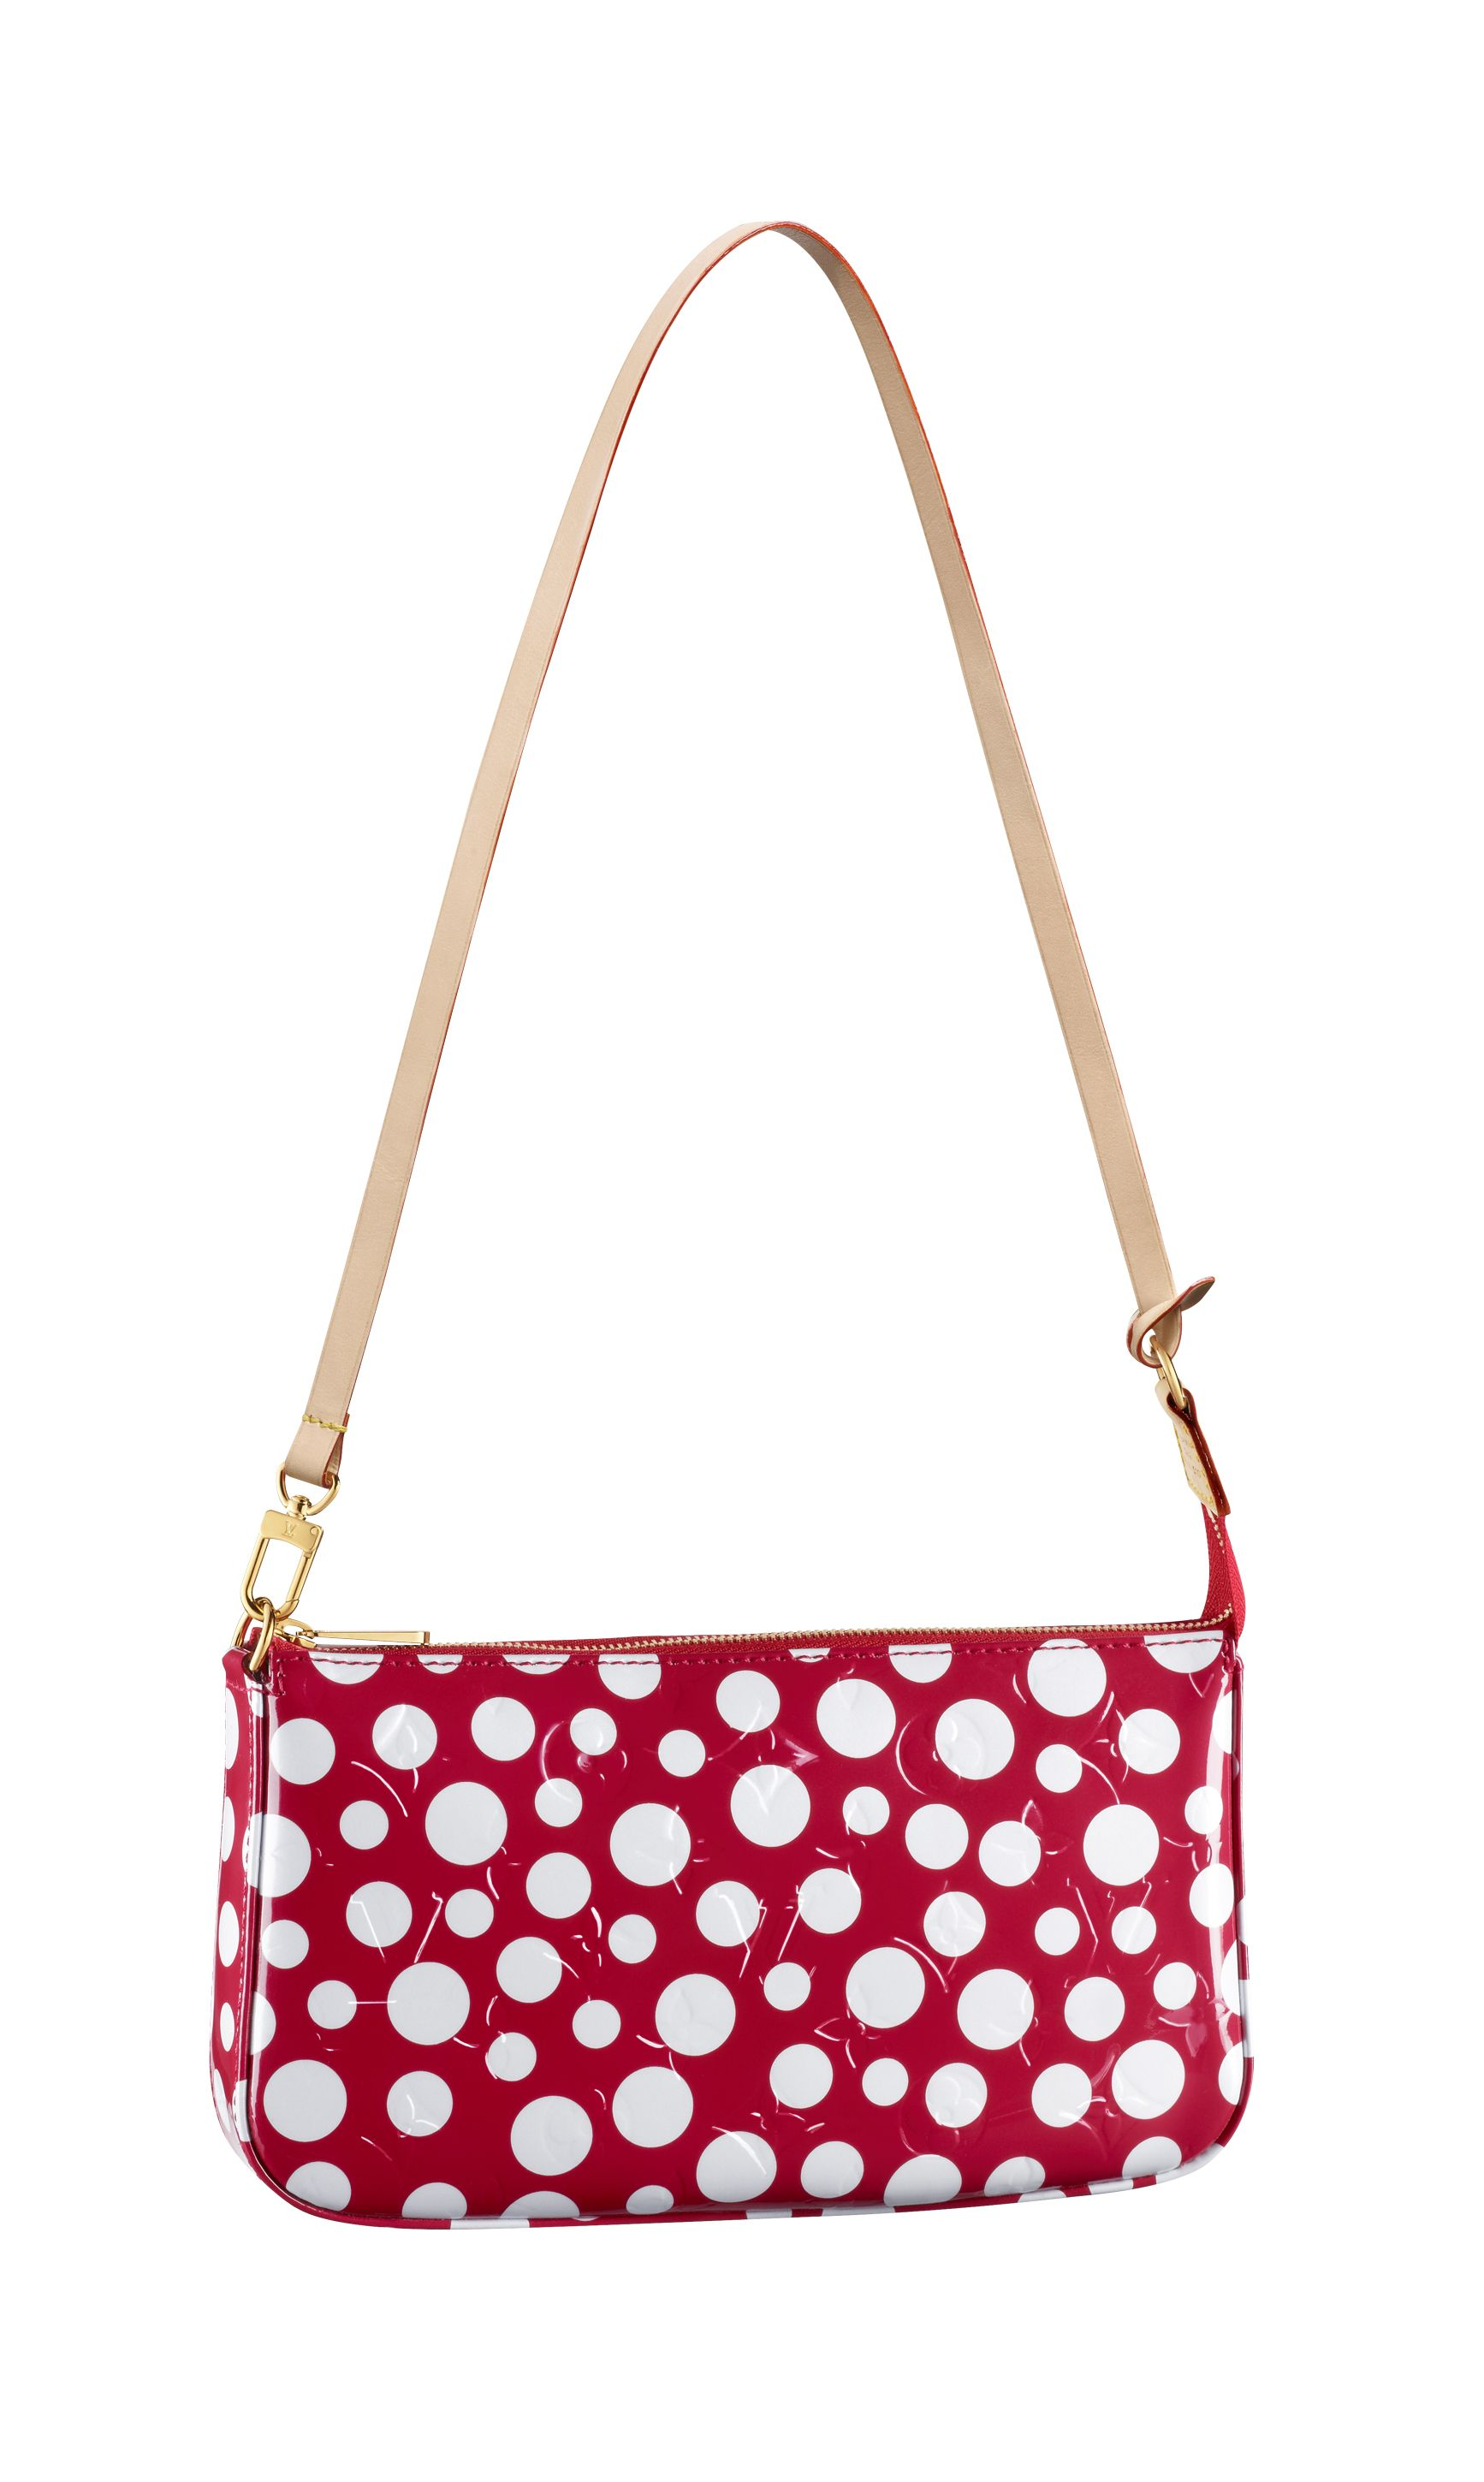 7eaf66bdfb60 A Pochette from the new Louis Vuitton Yayoi Kusama Collection. © Louis  Vuitton